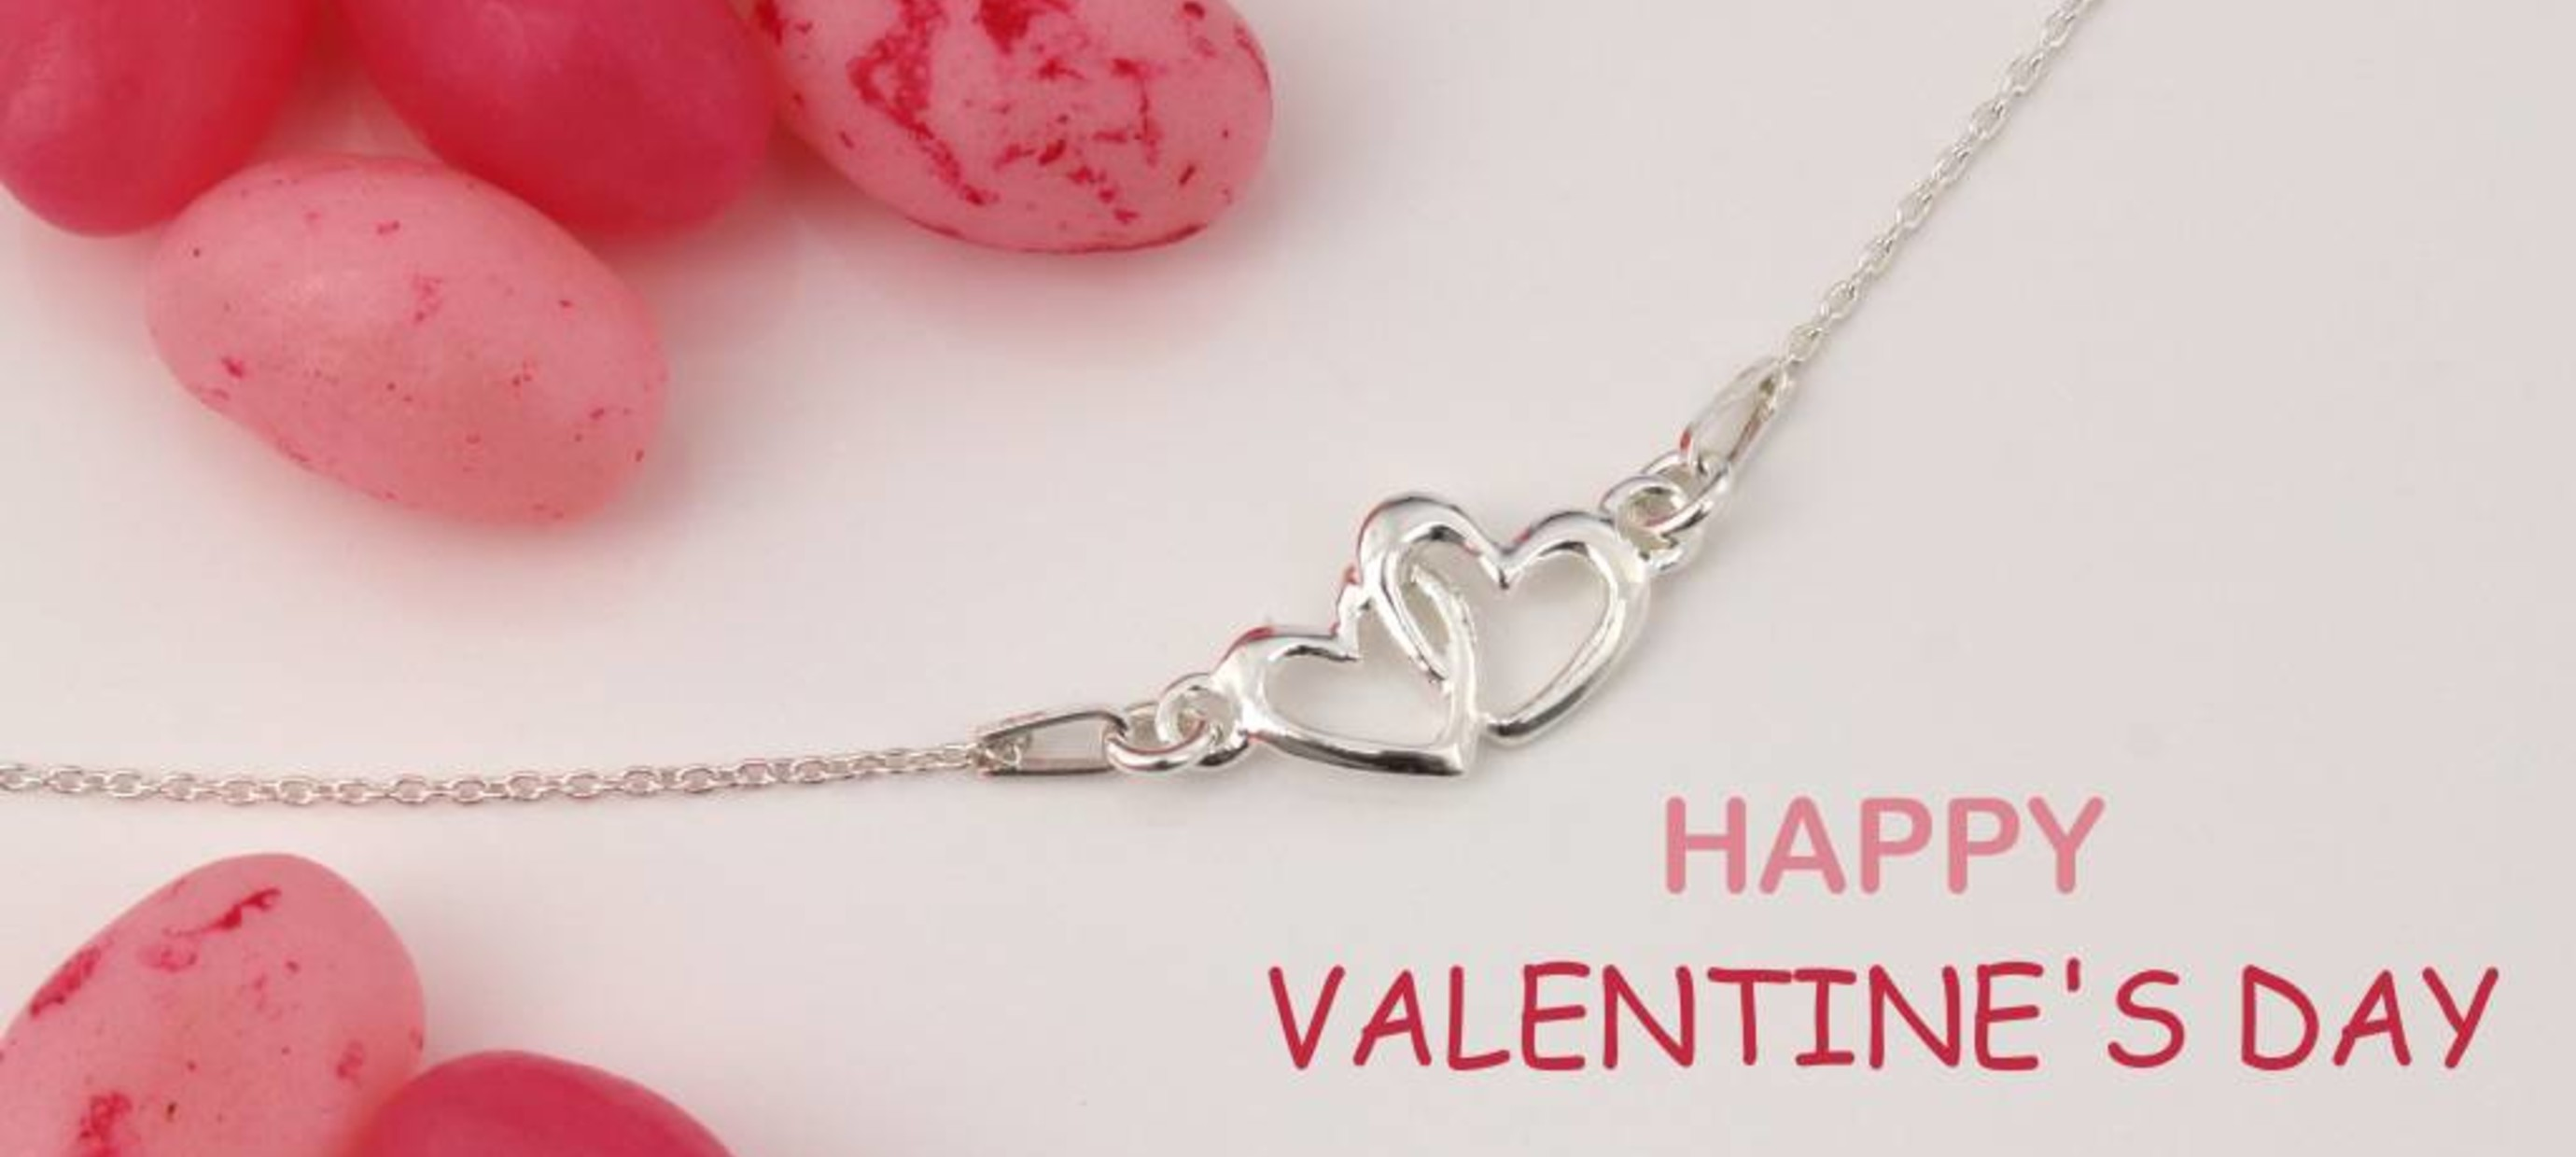 Jewelry Gift For Valentine S Day From Arlizi Jewelry Arlizi Jewelry Webshop